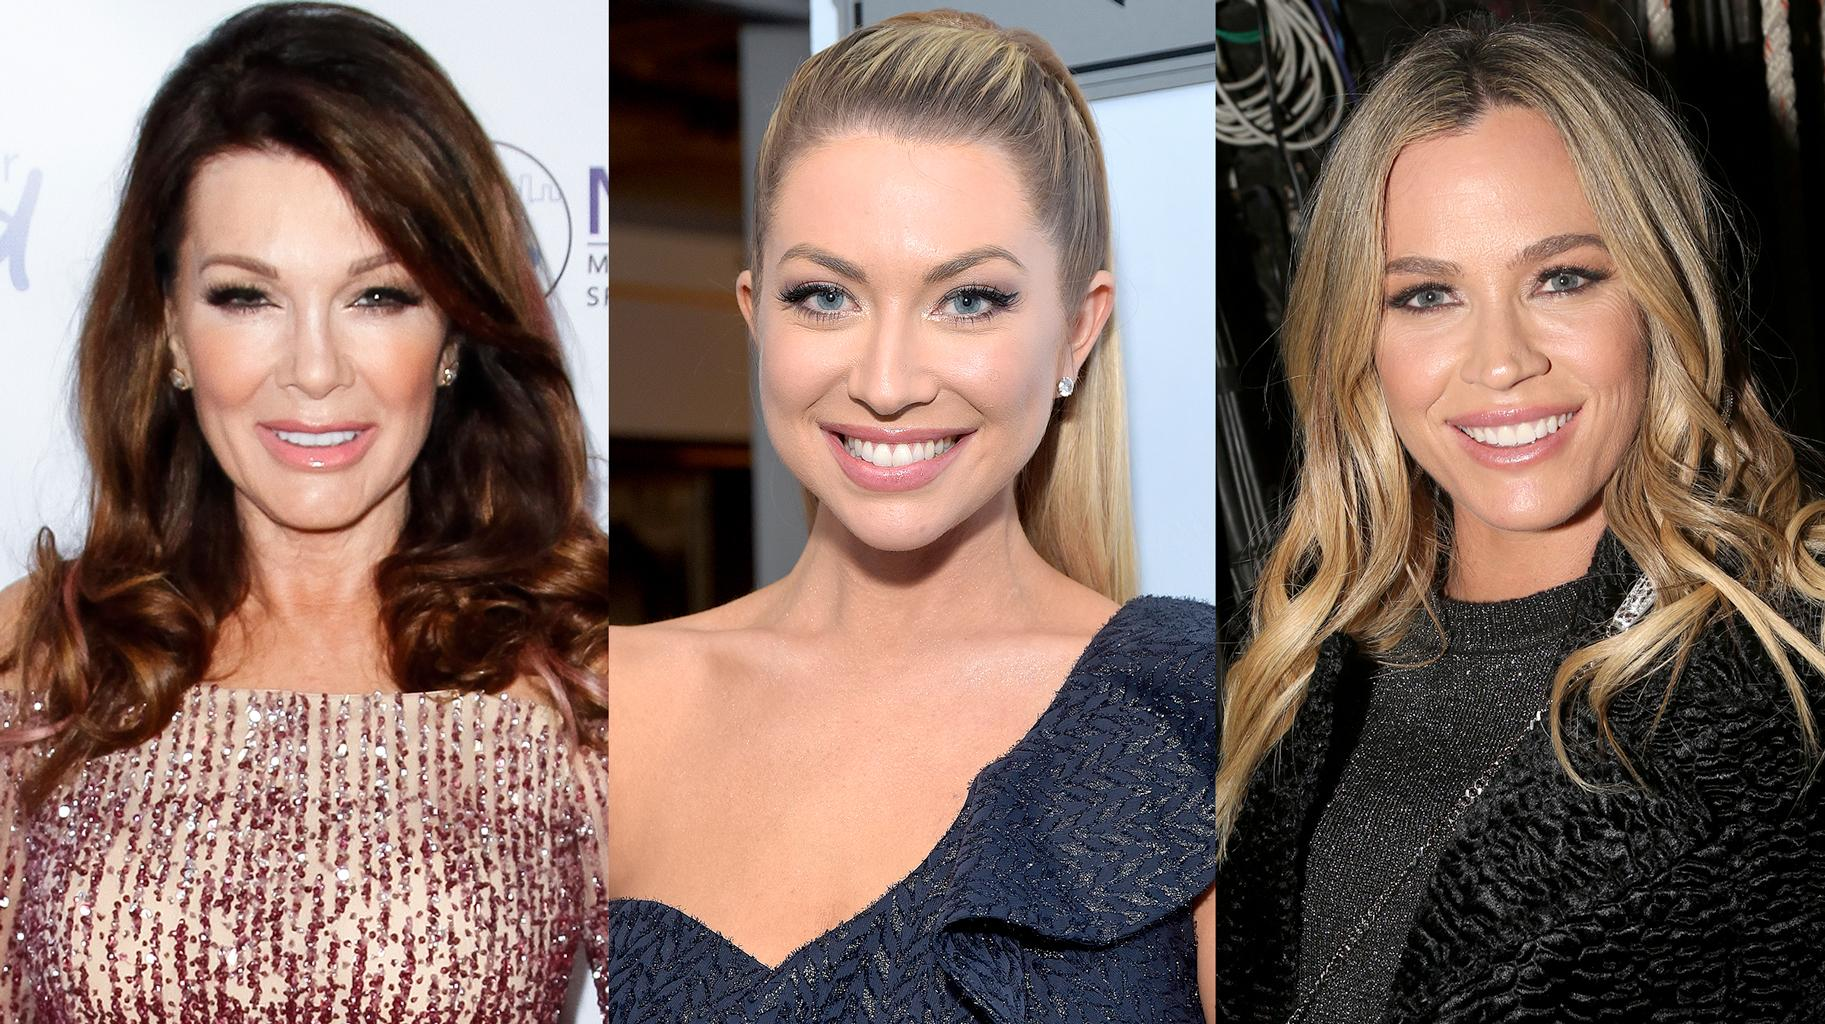 Lisa Vanderpump And Teddi Mellencamp Are Both Invited To Stassi Schroeder's Wedding - They Might Have An Awkward Run-In Due To RHOBH Drama!